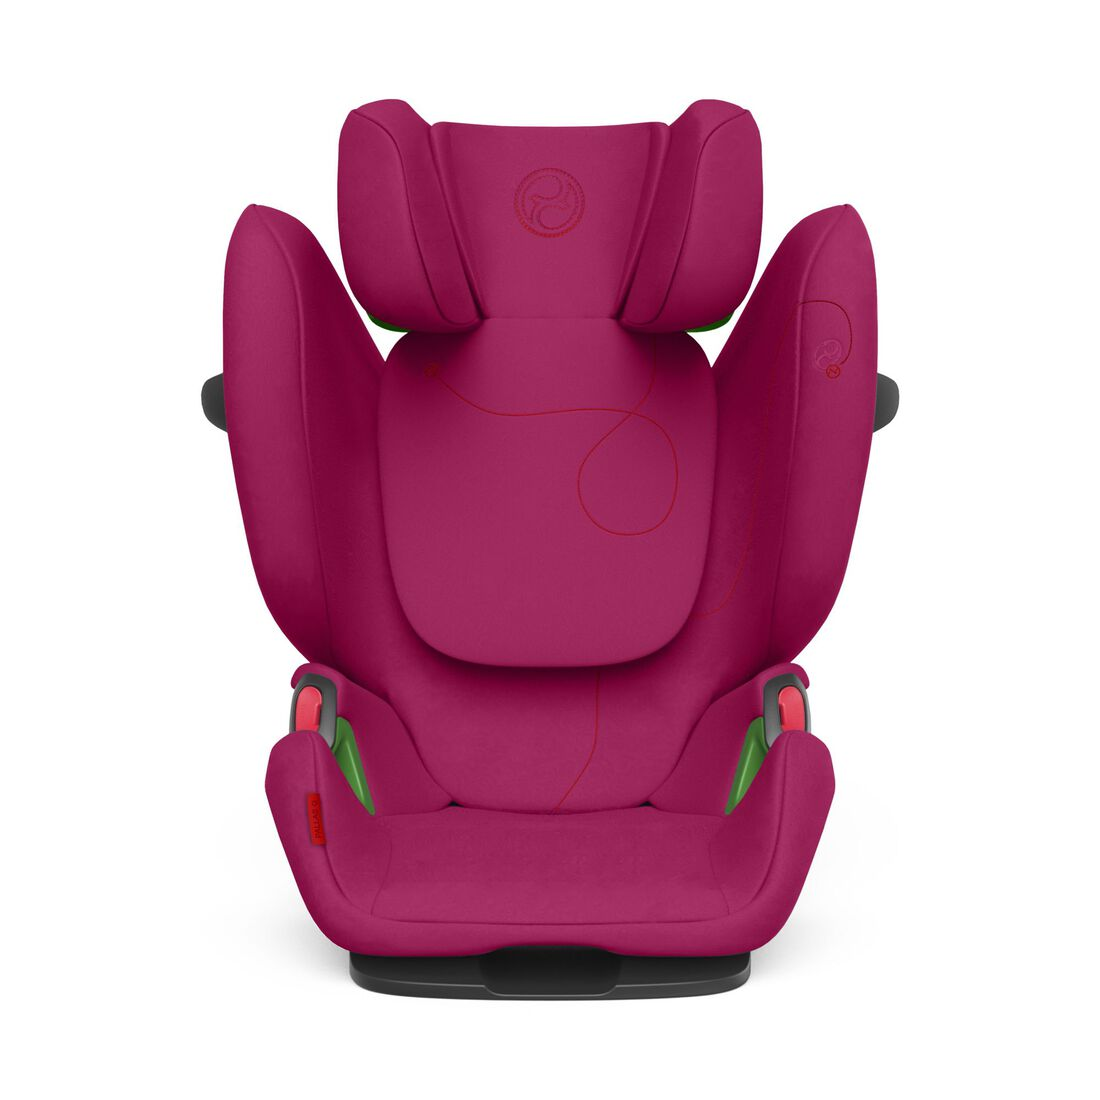 CYBEX Pallas G i-Size - Magnolia Pink in Magnolia Pink large image number 8